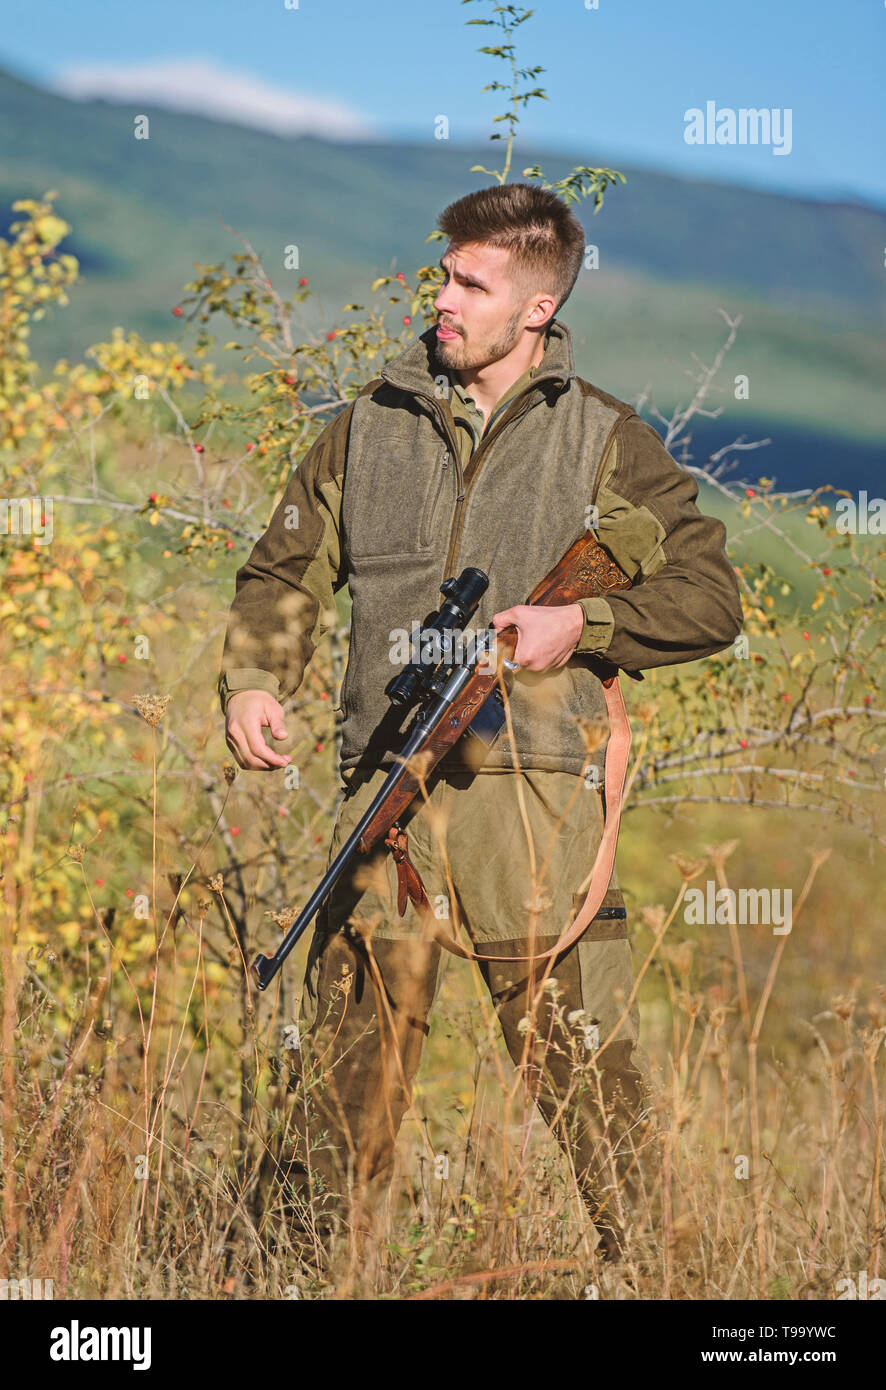 Hunter bearded poacher looking for victim. Poacher with rifle in nature environment. Illegal hunting. Forbidden hunting. Breaking law. Poaching concept. Activity for brutal man. Hunter brutal poacher. - Stock Image